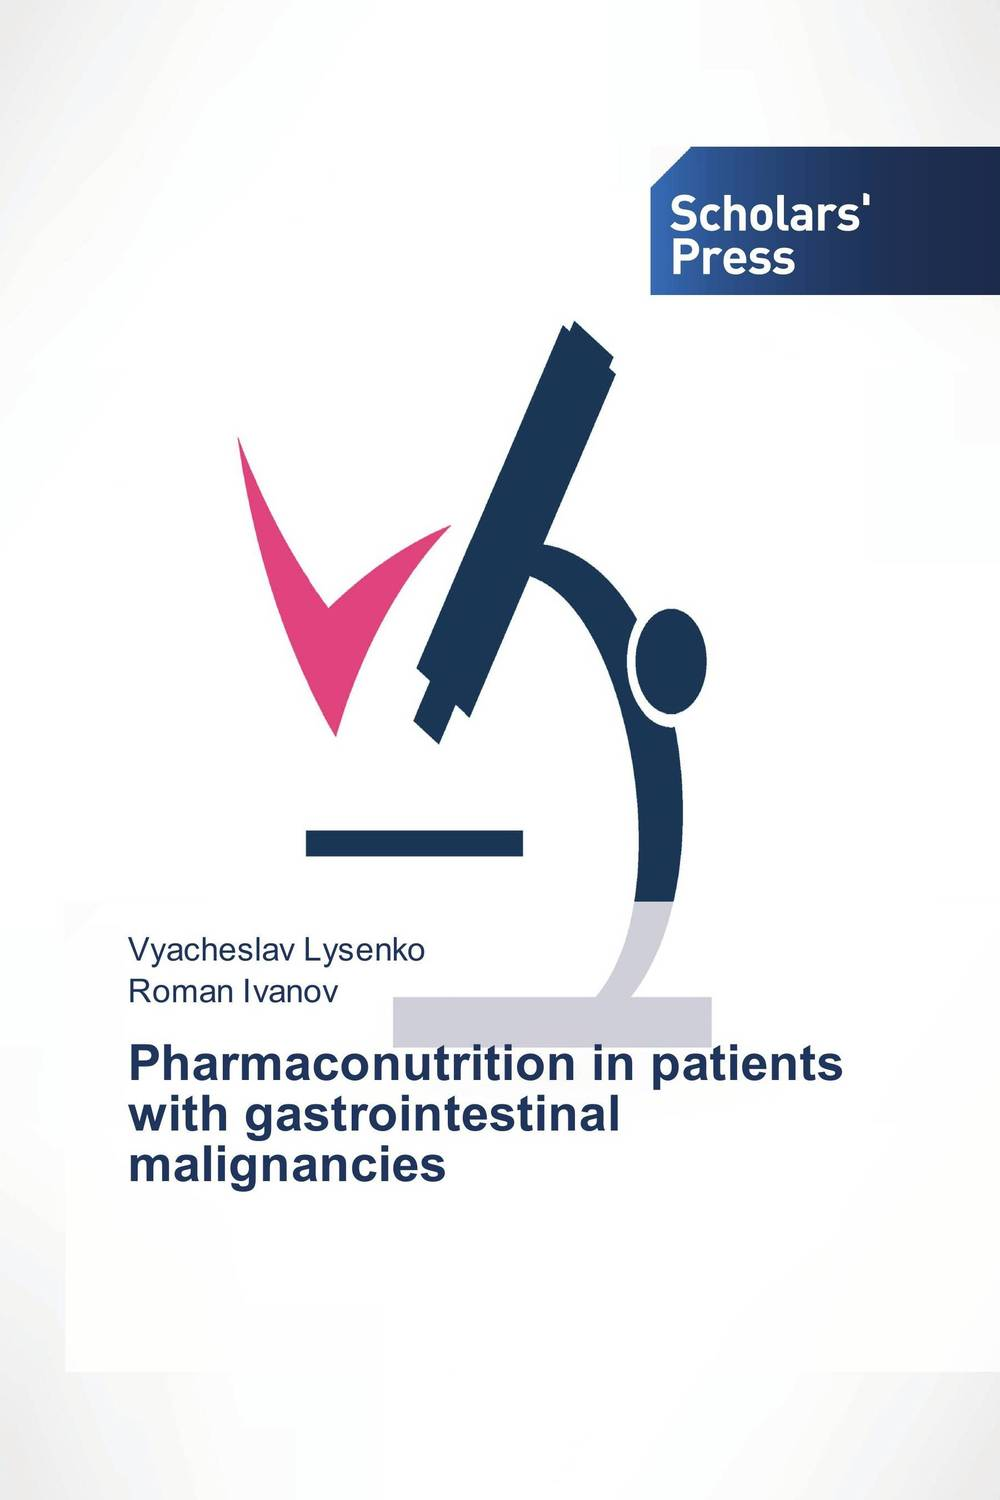 Pharmaconutrition in patients with gastrointestinal malignancies